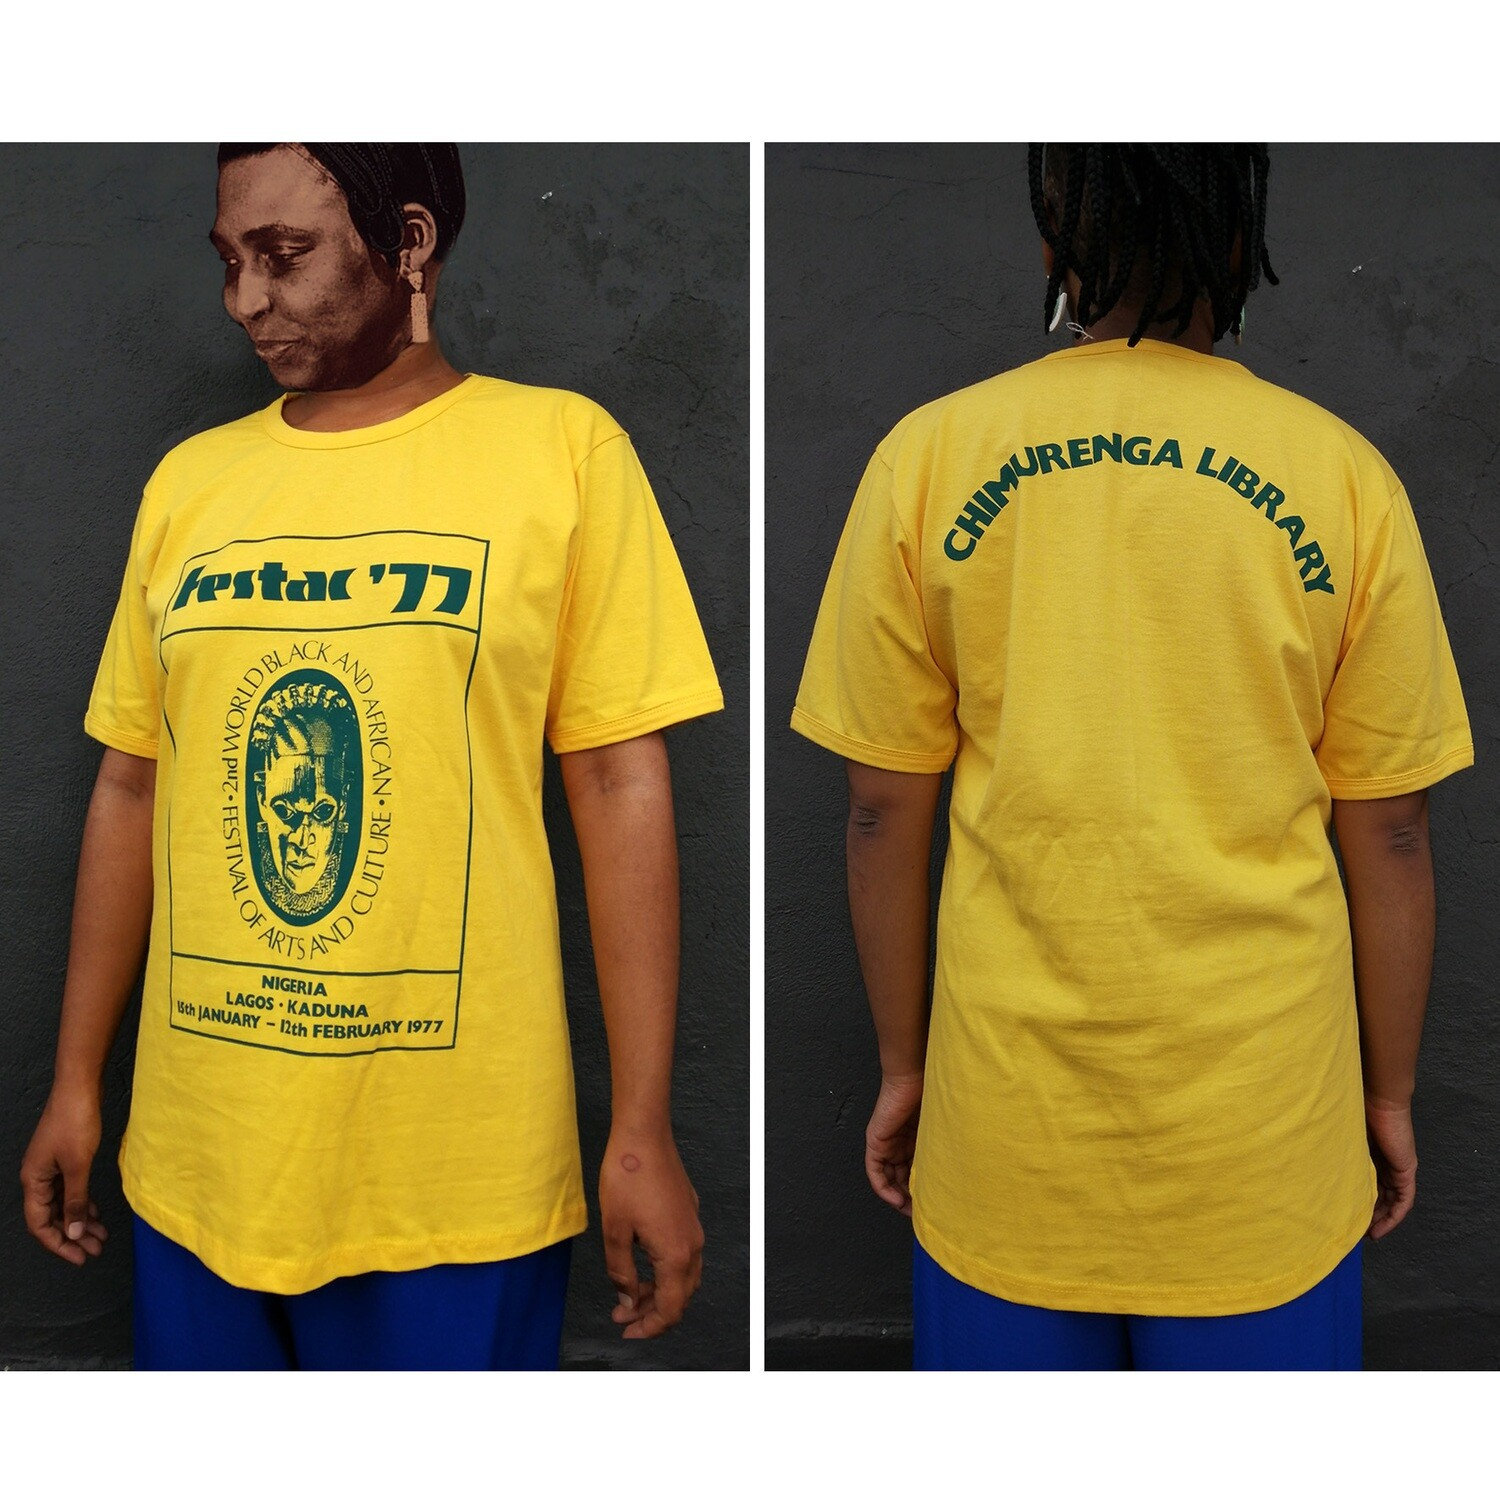 Festac '77 T.Shirt (Yellow)